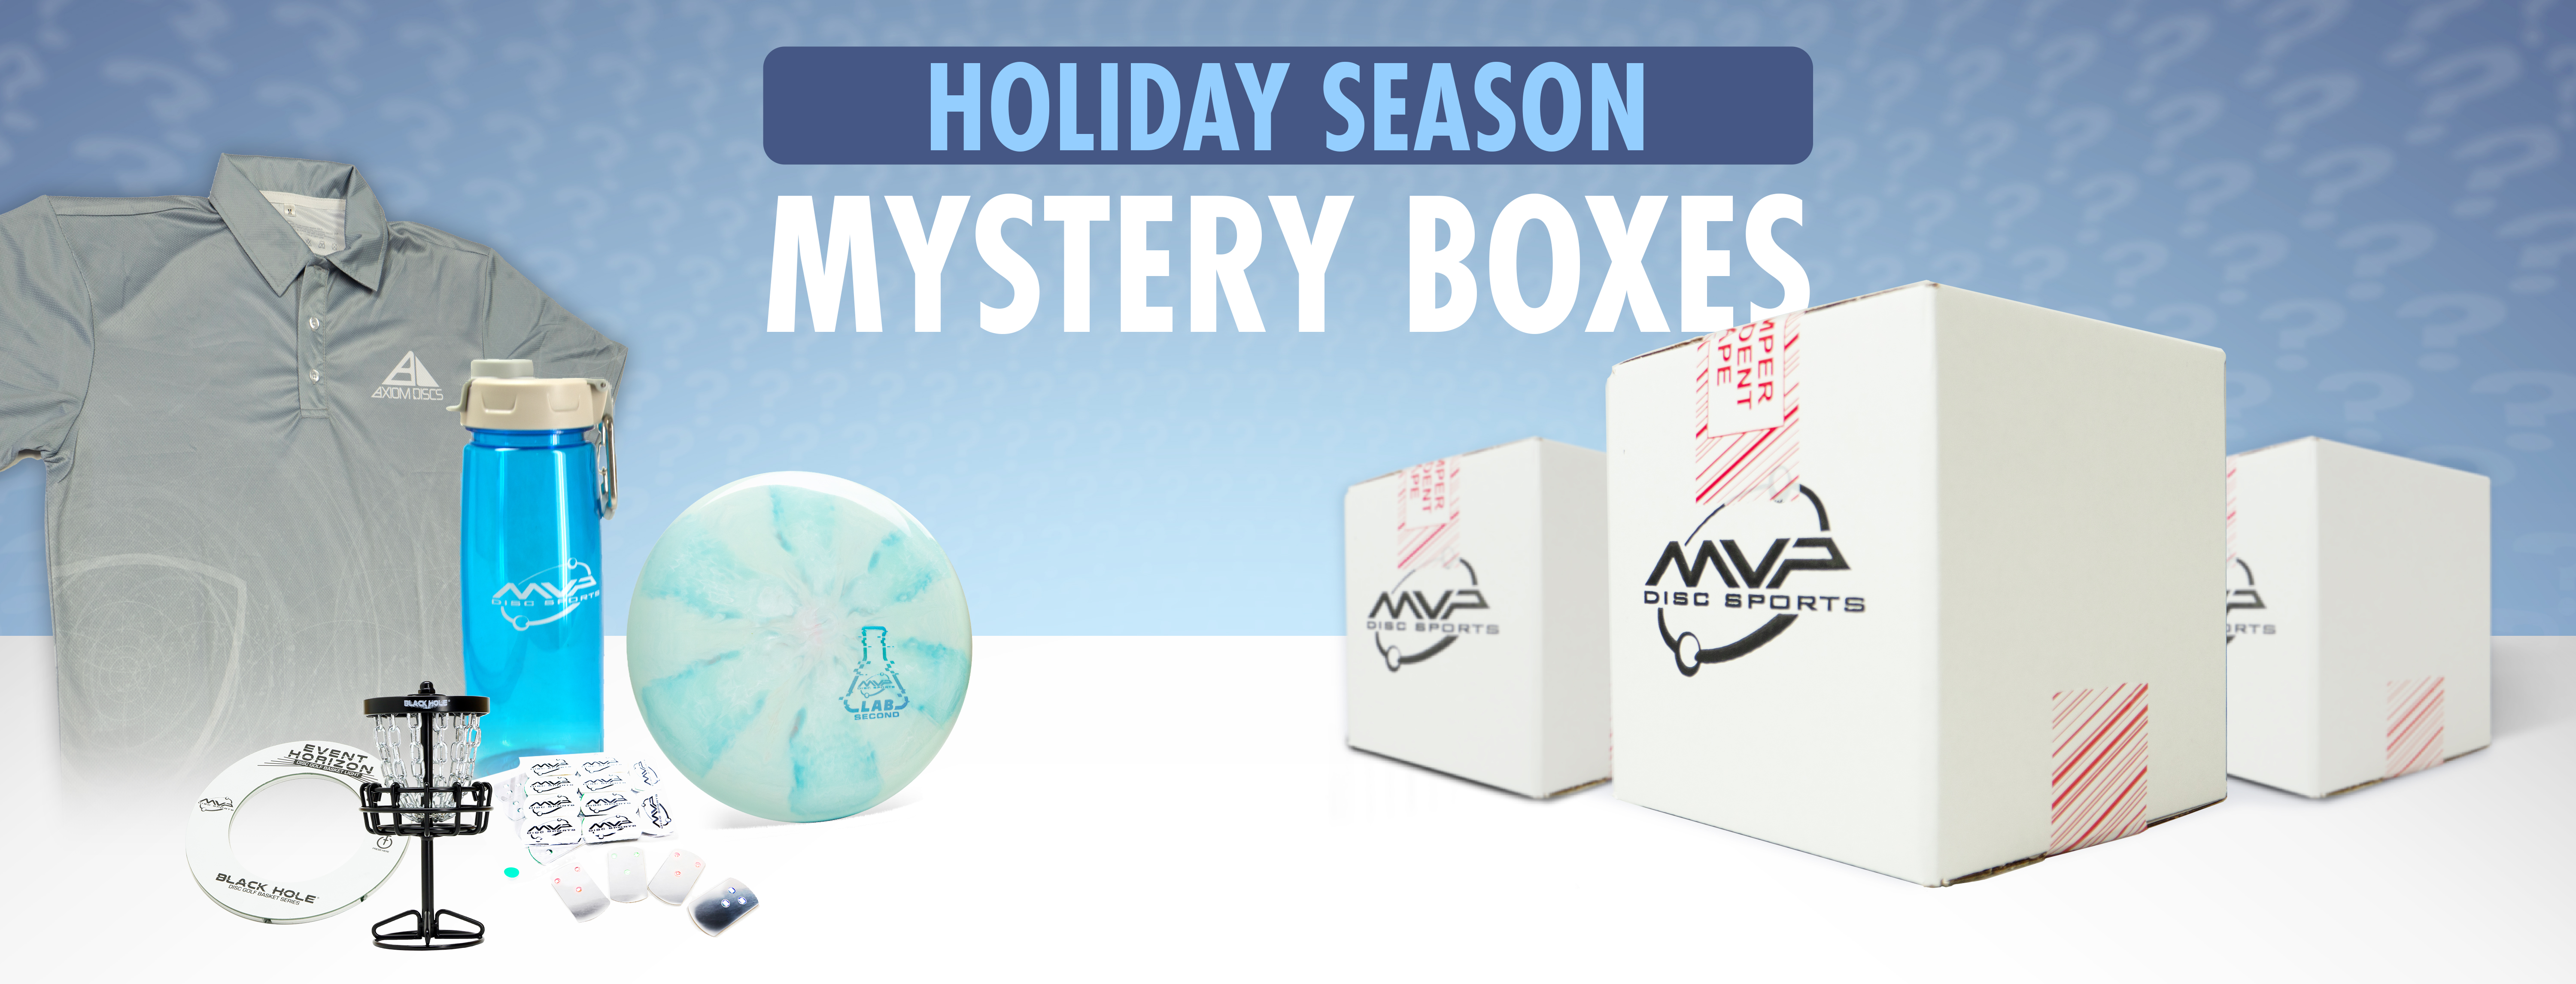 Mystery Boxes 1